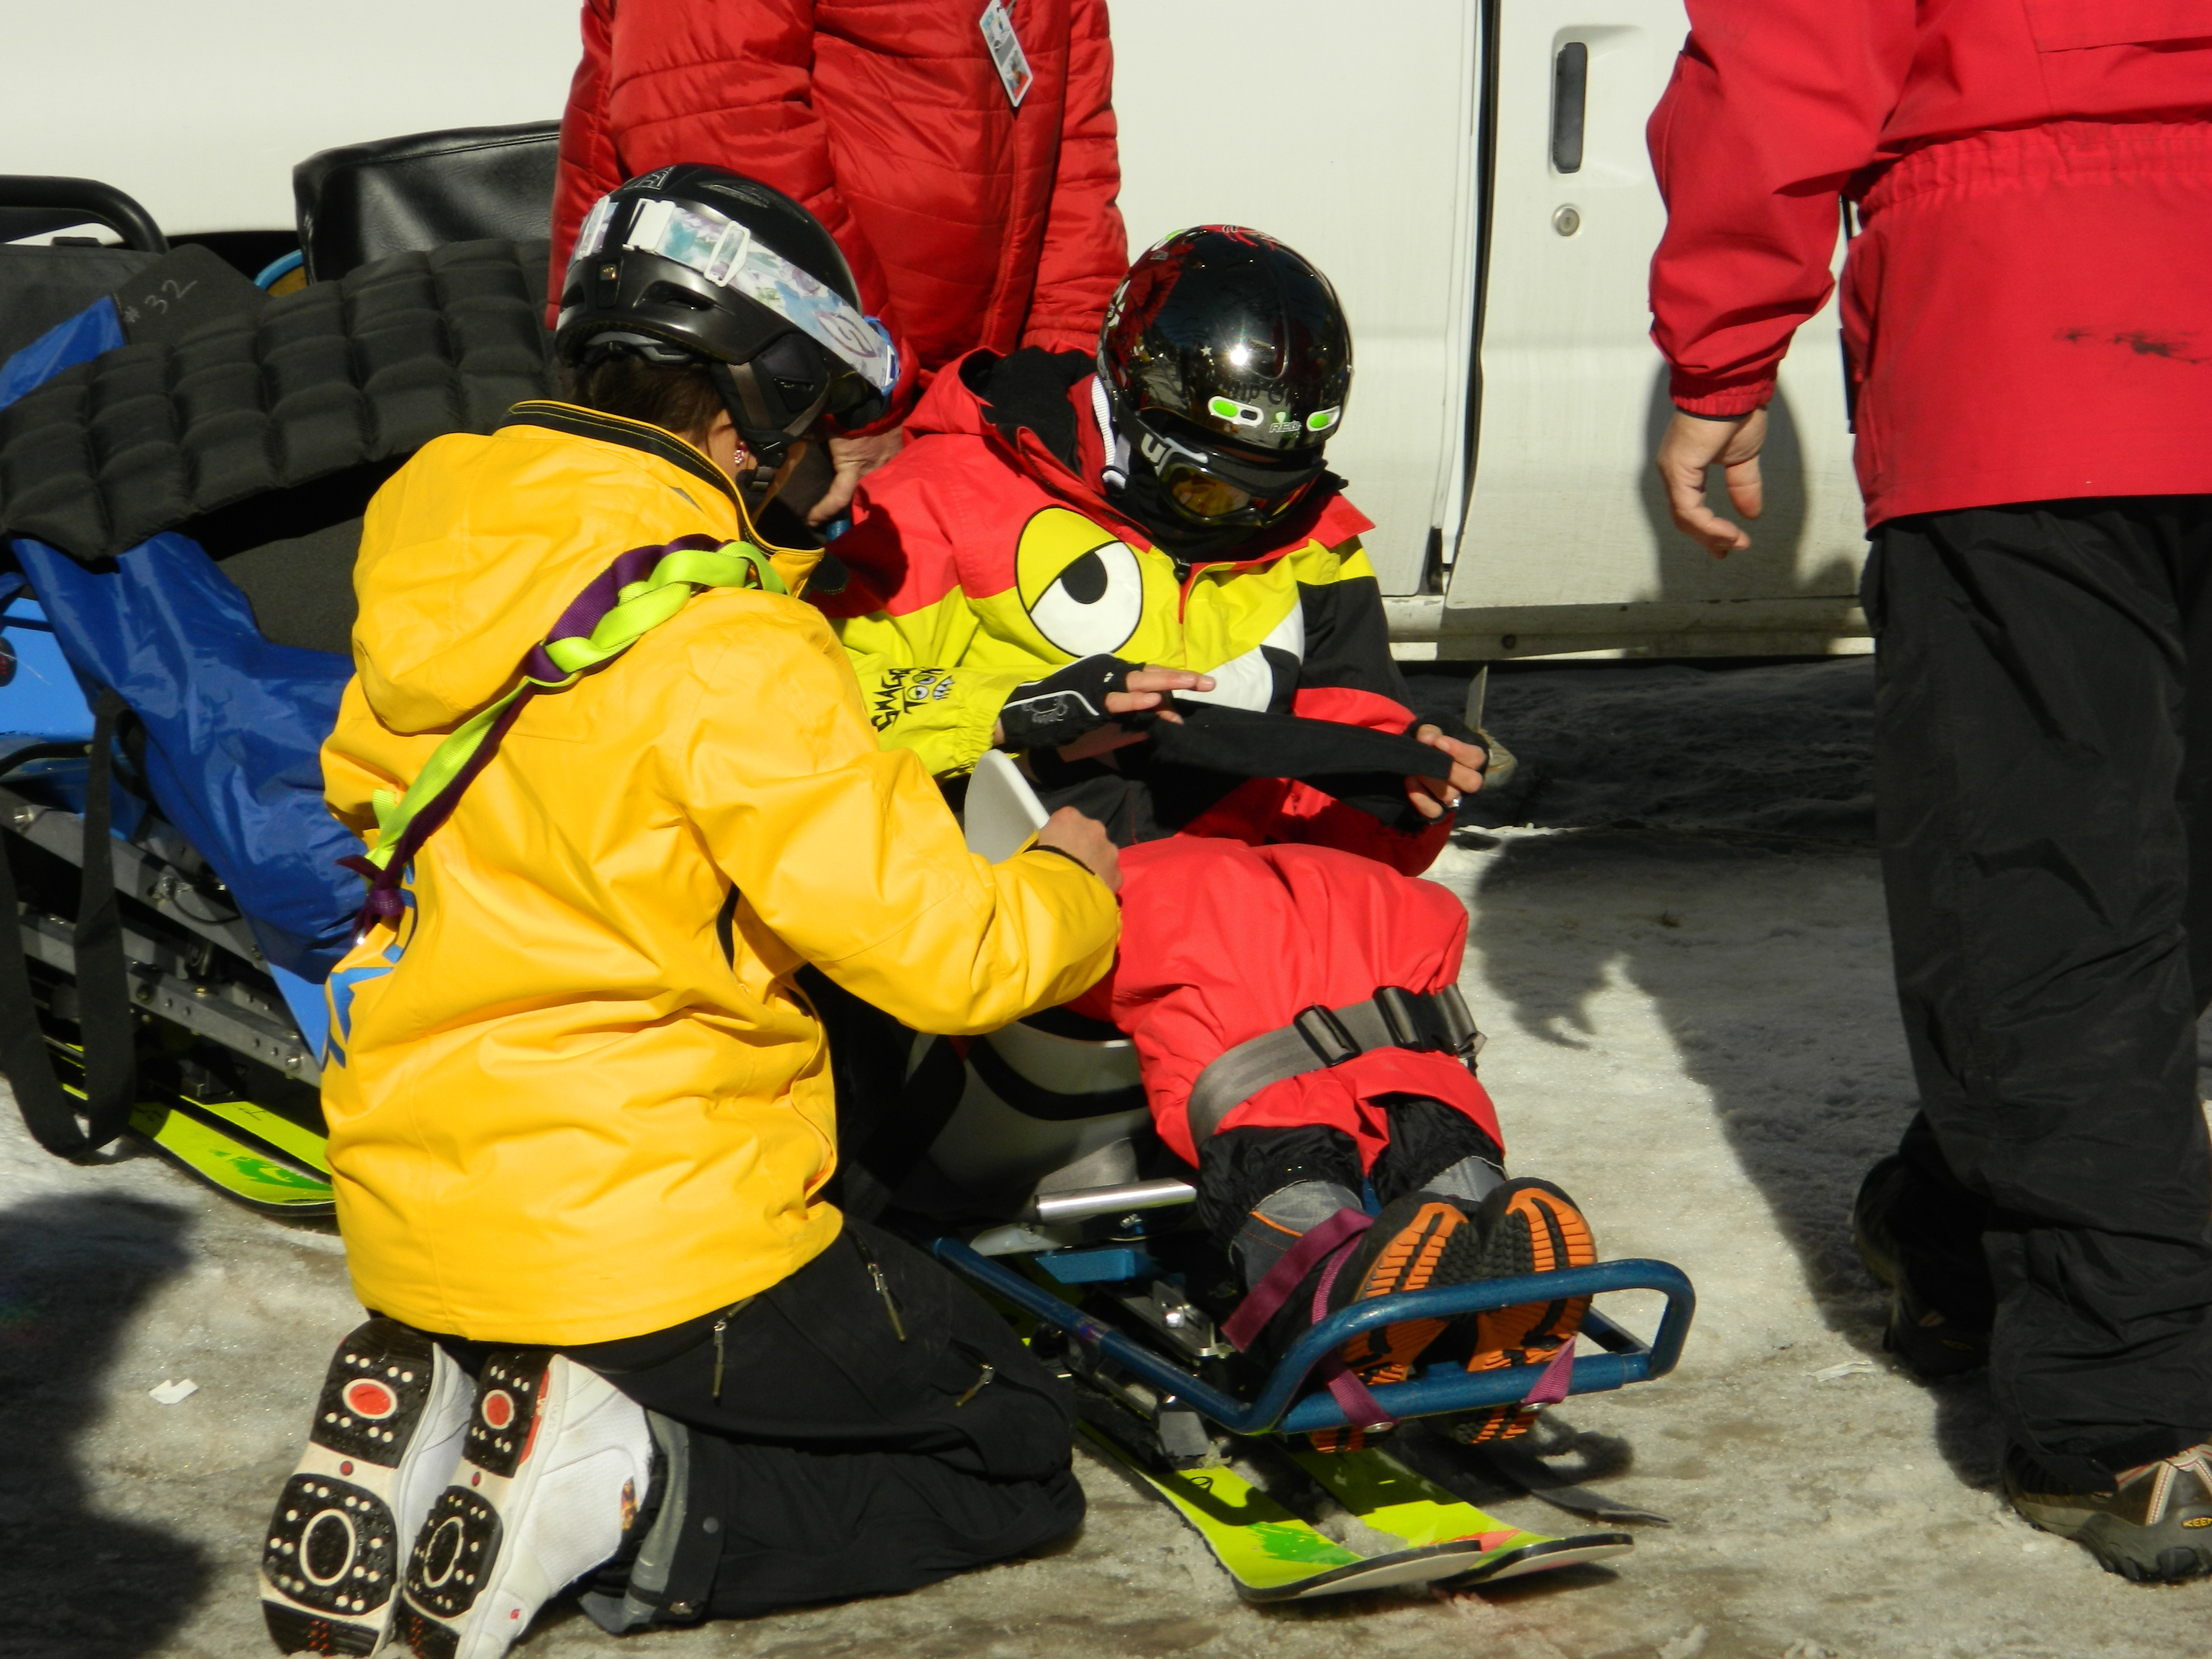 A Taos Ski Valley instructor kneels to assist a disabled skier in a ski chair in the parking lot. Two other skiers help.